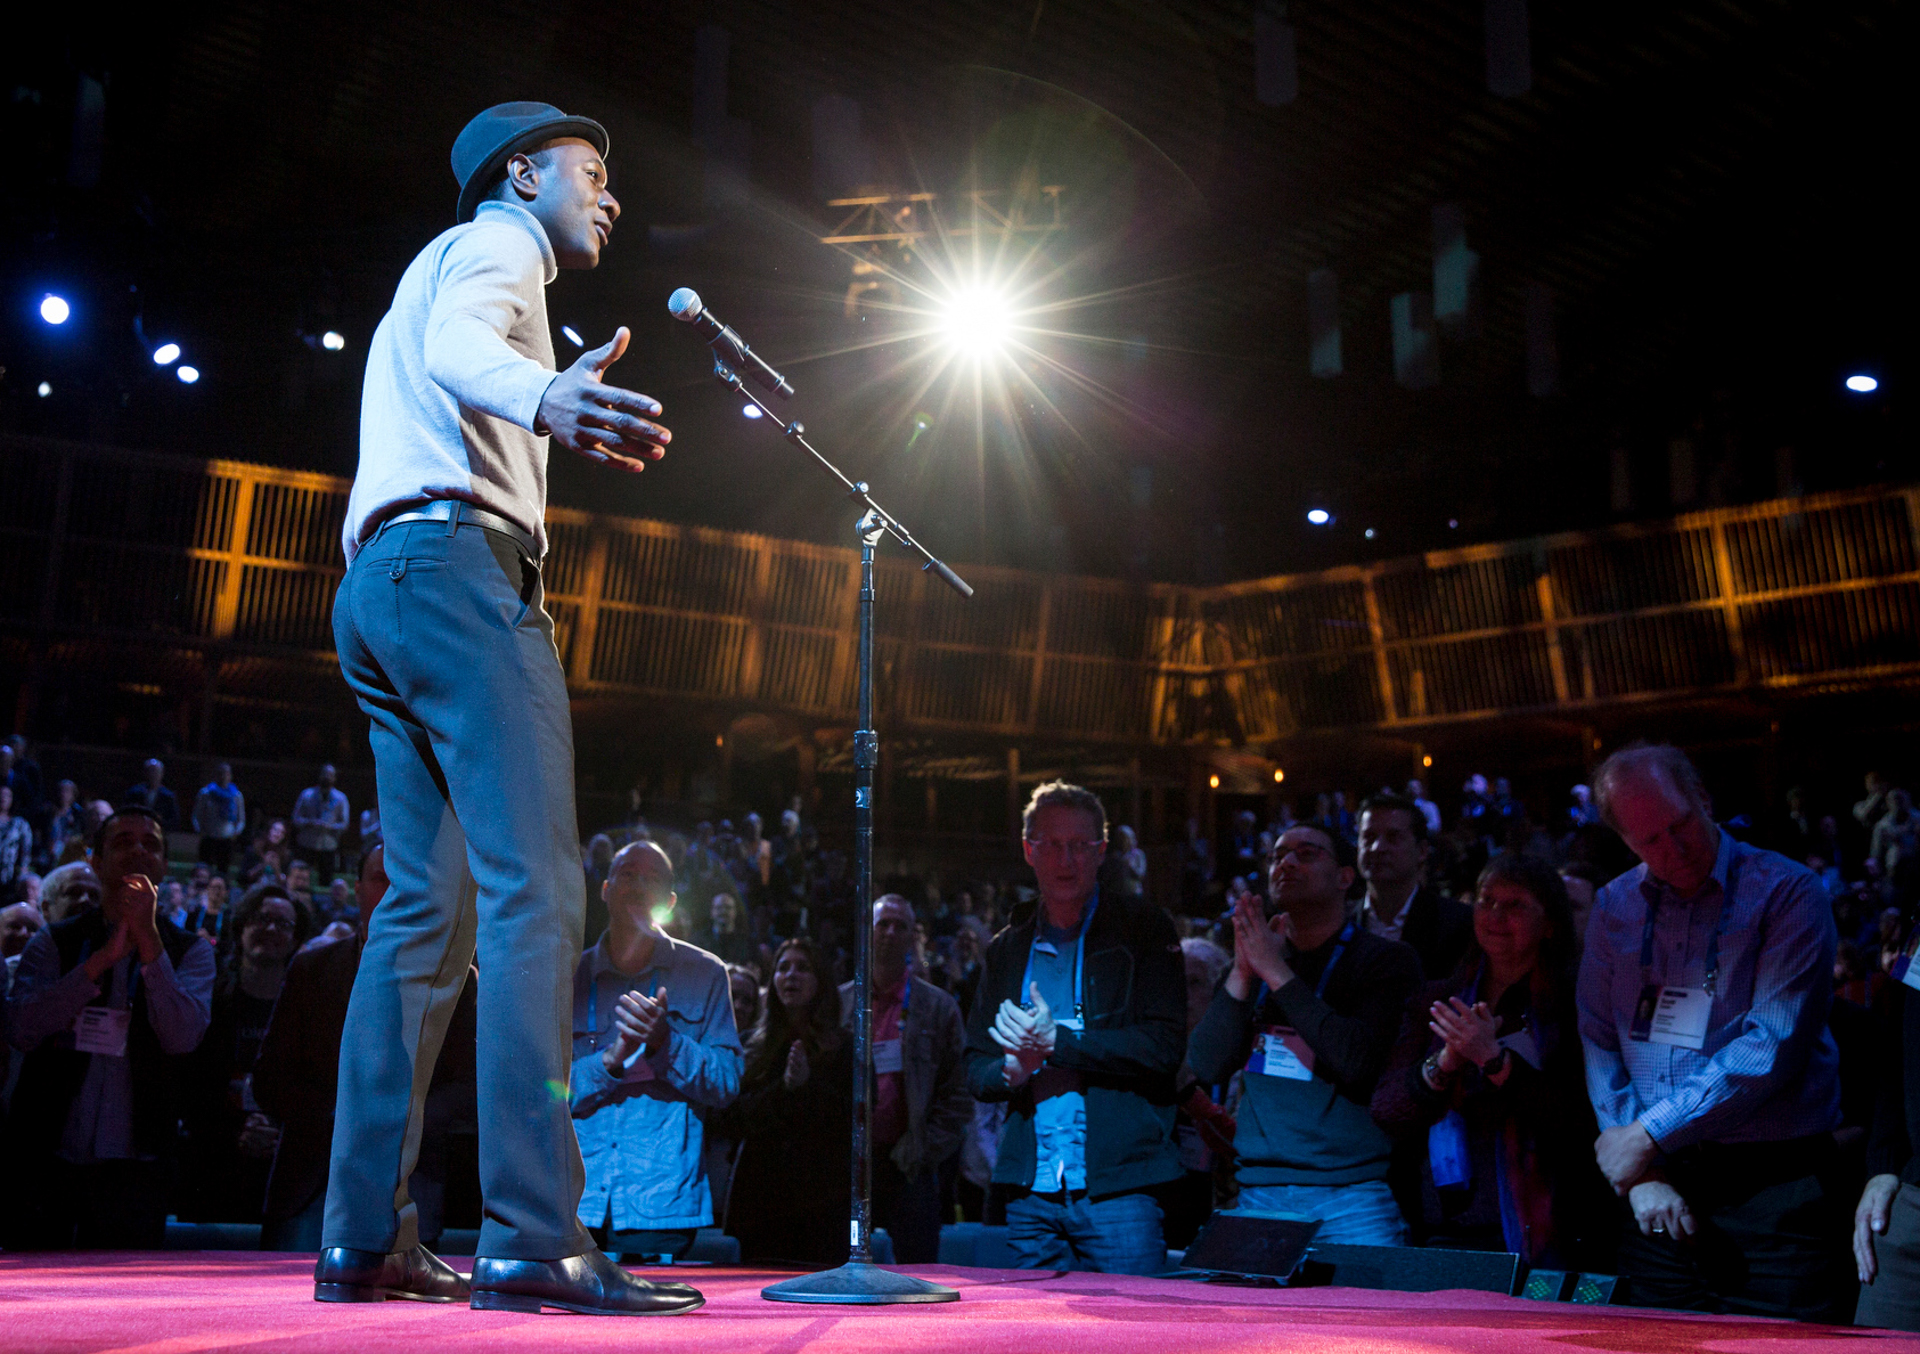 Aloe Blacc performs at TED2015 - Truth and Dare, Session 12. Photo: Bret Hartman/TED